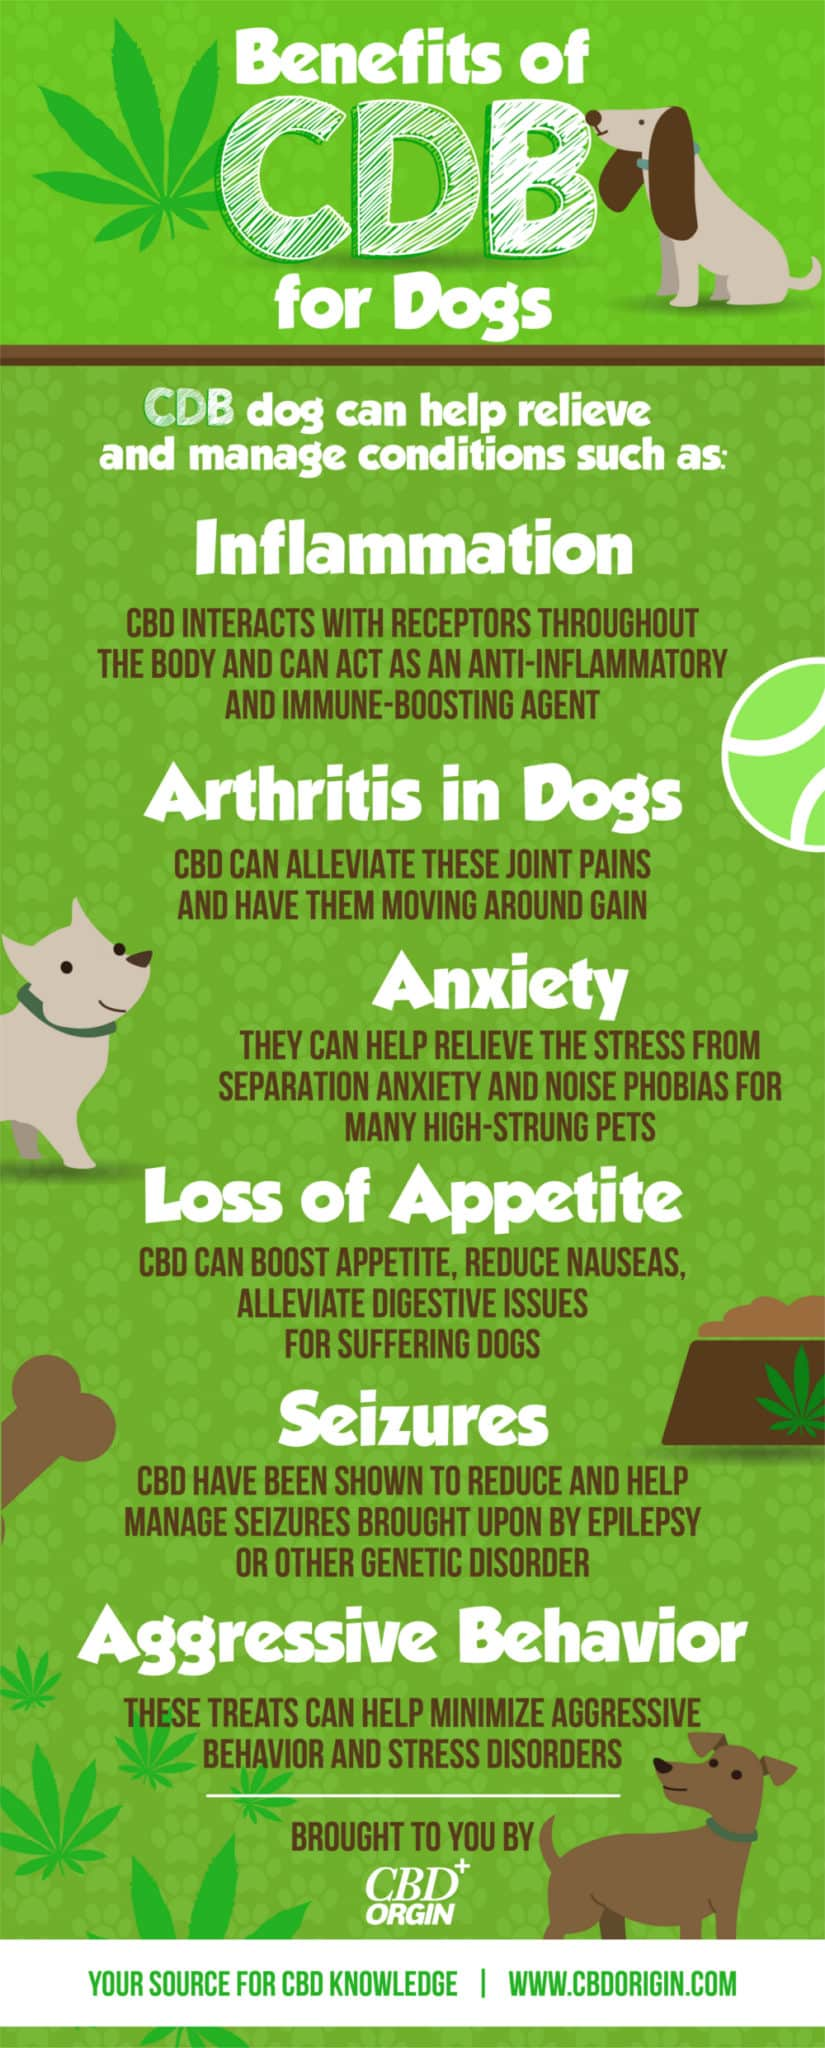 The Benefits of CBD Oil for Dogs Ingographic